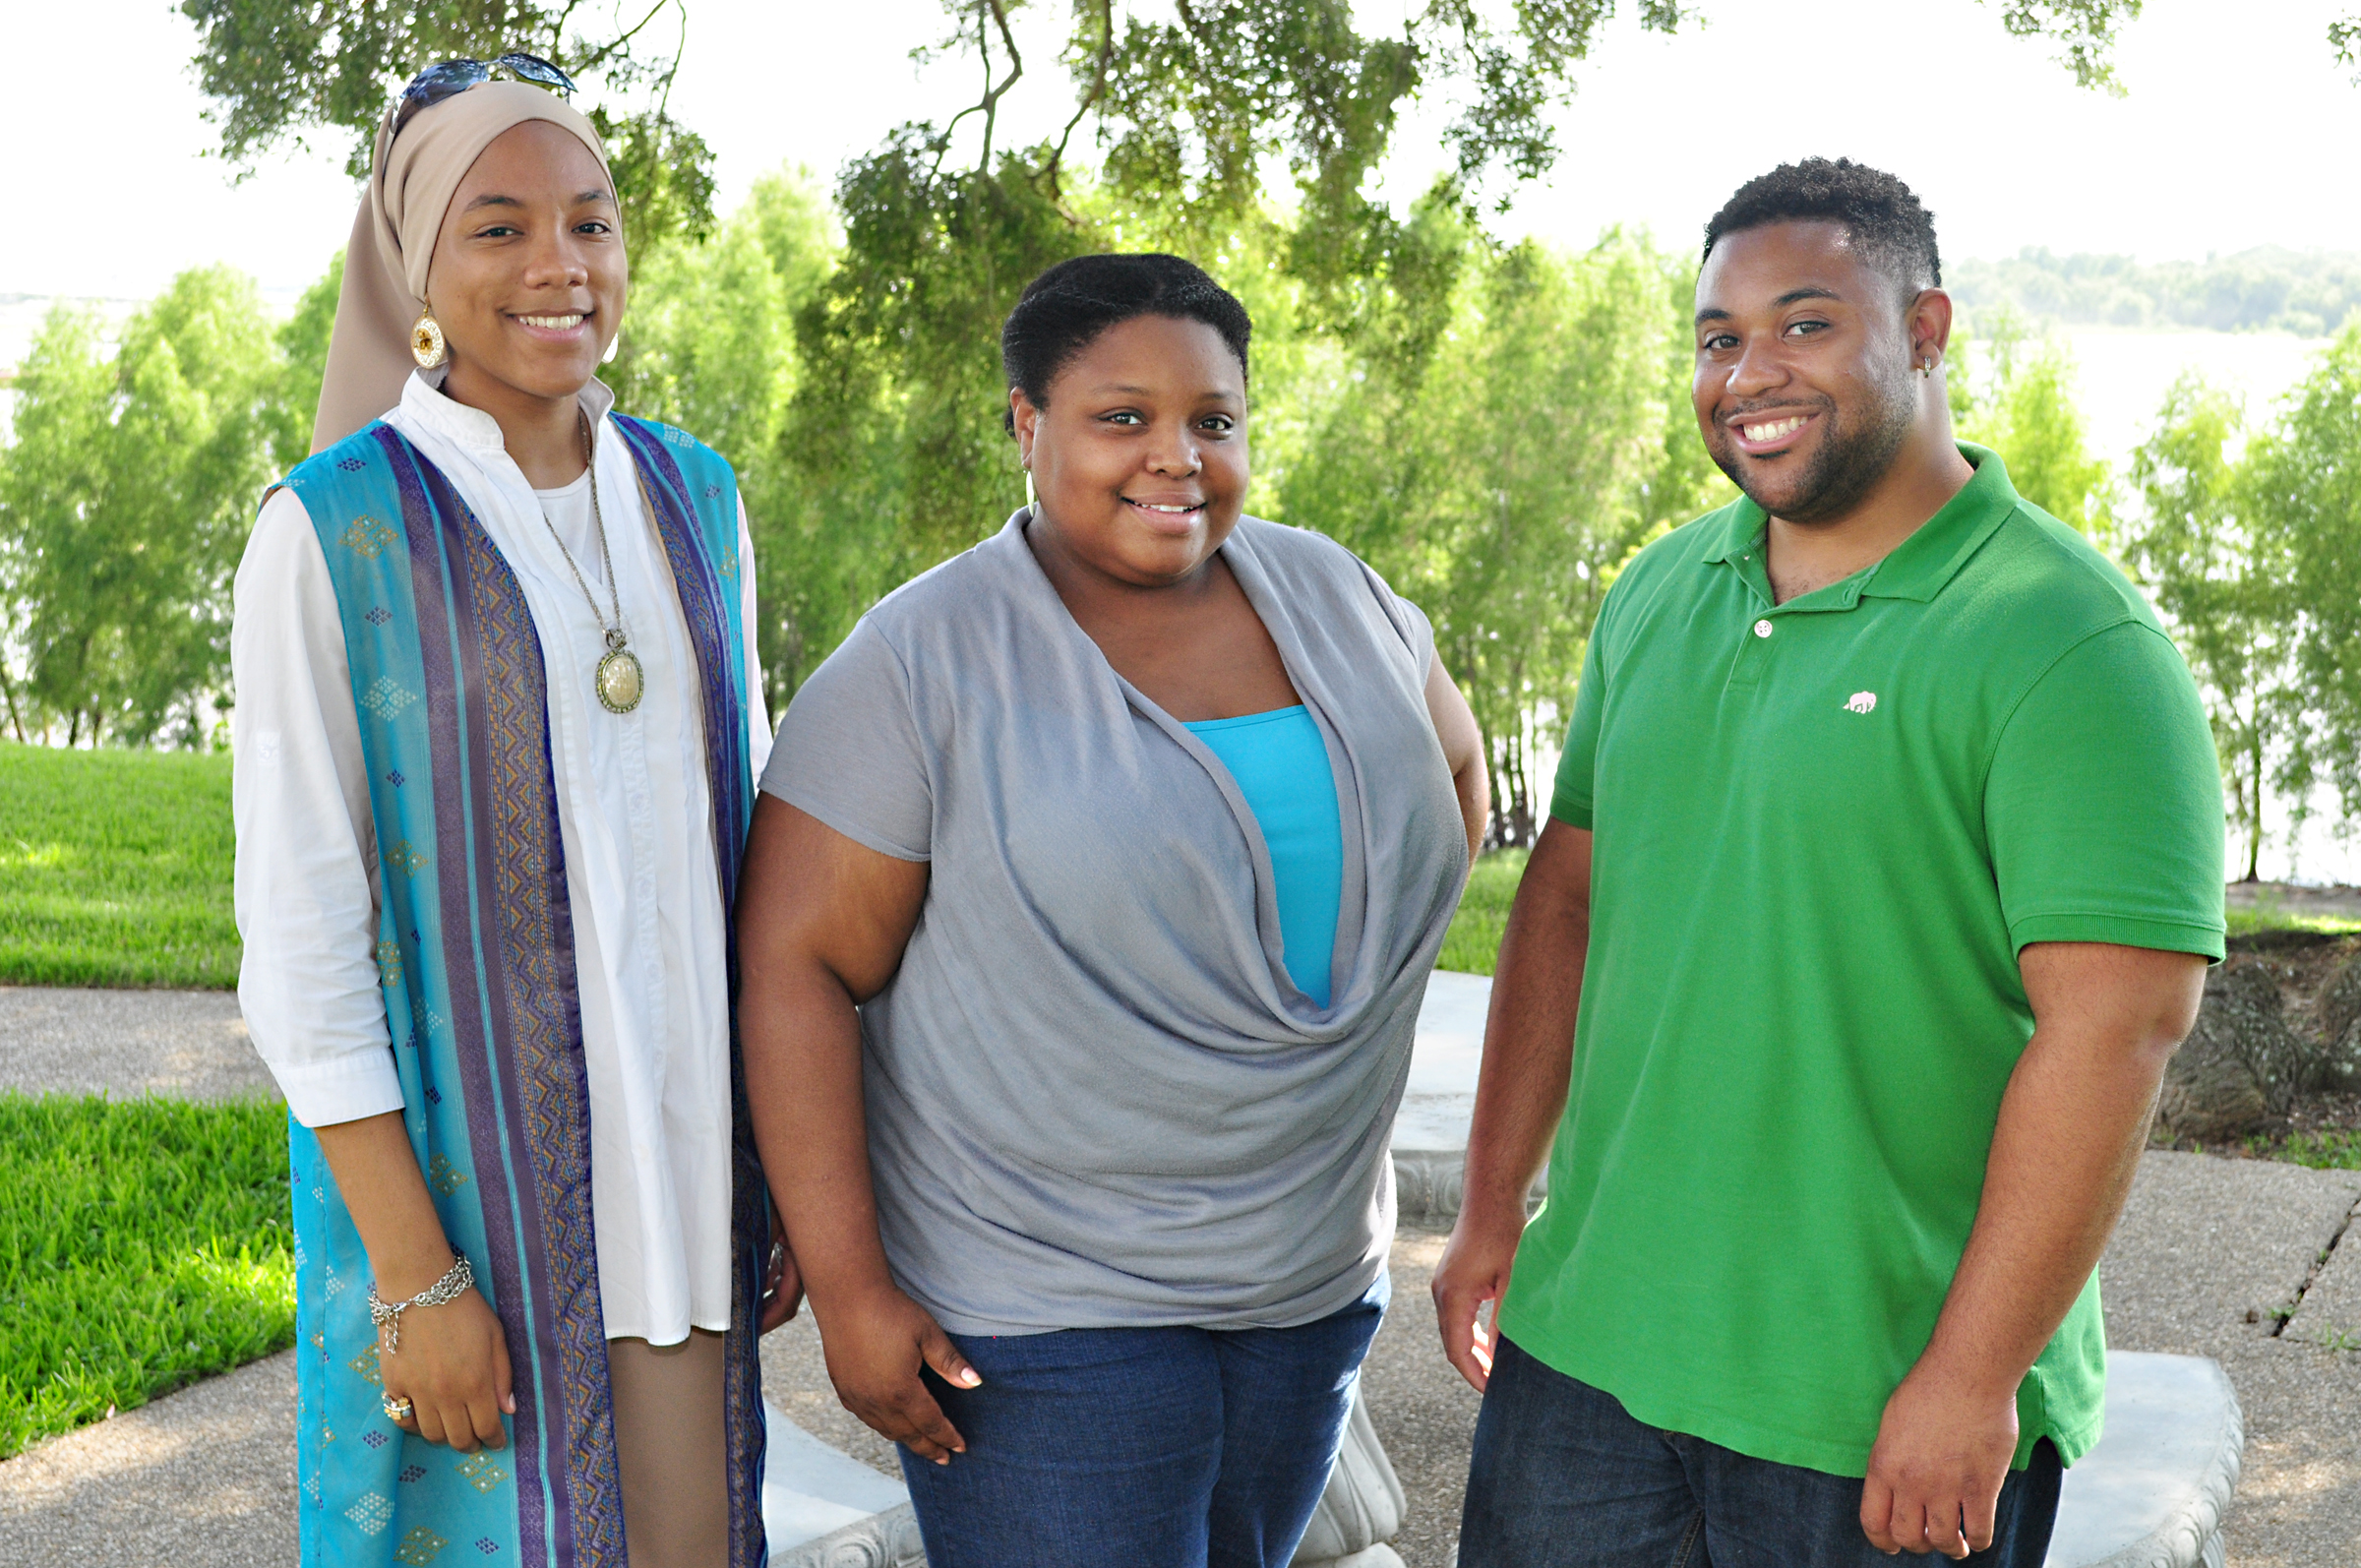 From left to right:  Ga'Brielle Muhammad, Vernita Adkins and Jarred Hayes.  Photo by John Oubre, SU Office of Media Relations